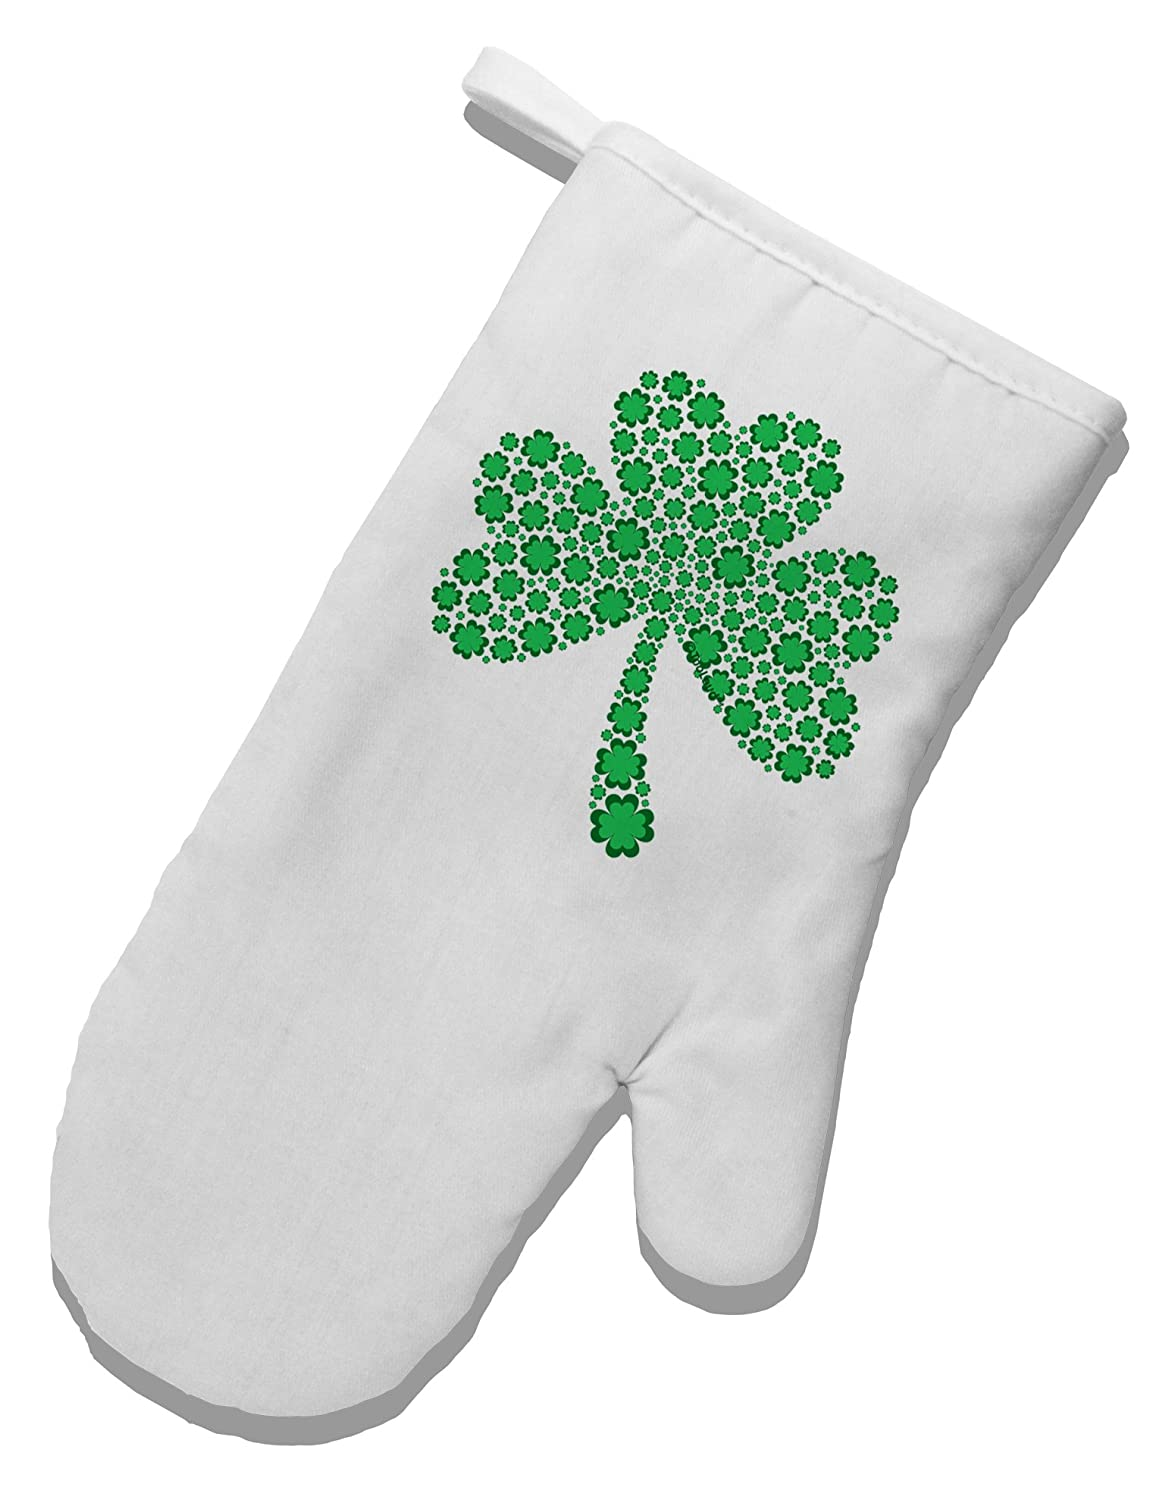 TooLoud St. Patrick's Day Shamrock Design - Shamrocks White Printed Fabric Oven Mitt oven mitt flame resistant 100% cotton treated fabric each